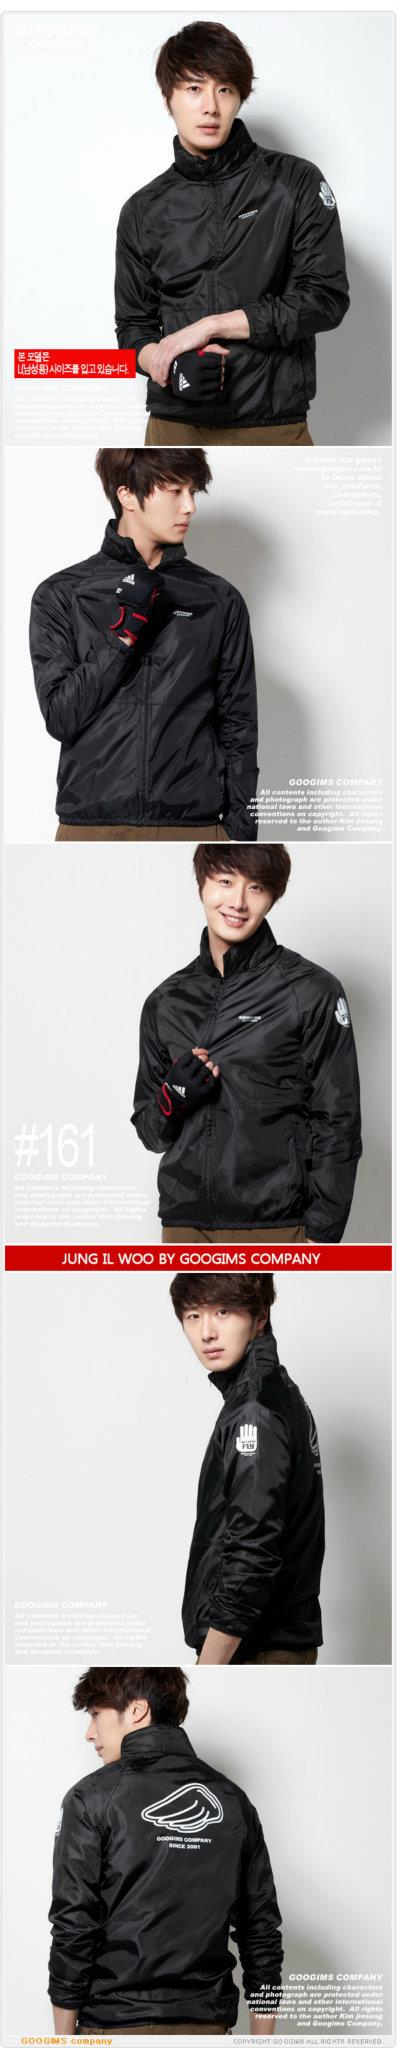 2011 10 Jung II-woo for Googims. Part 100015